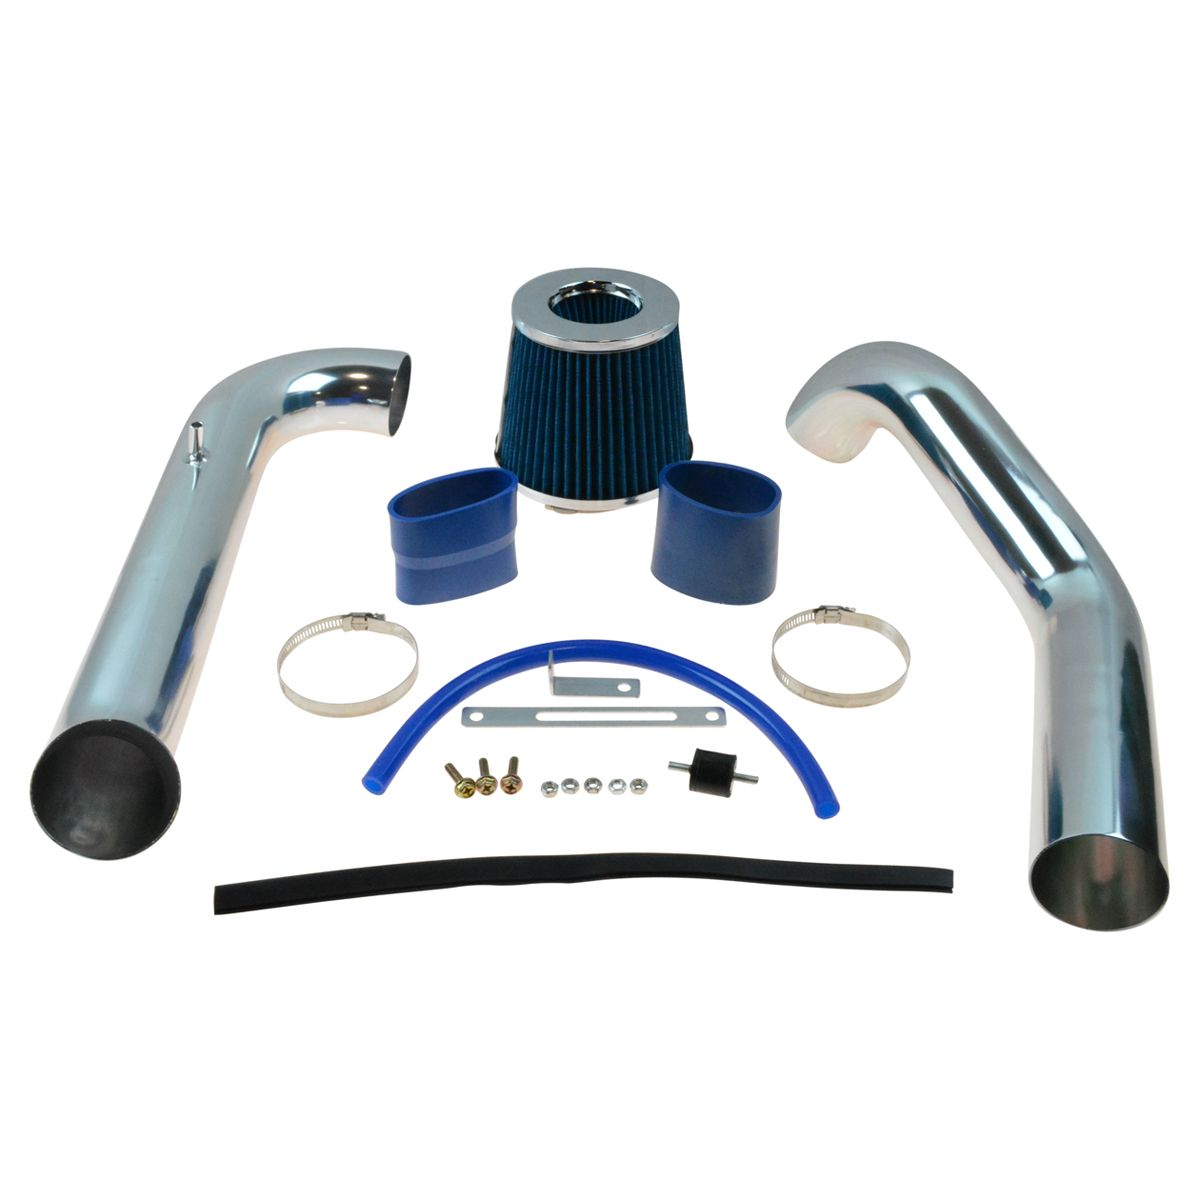 Performance Cold Air Intake CAI w// Blue Air Filter for Honda Civic CX DX LX New